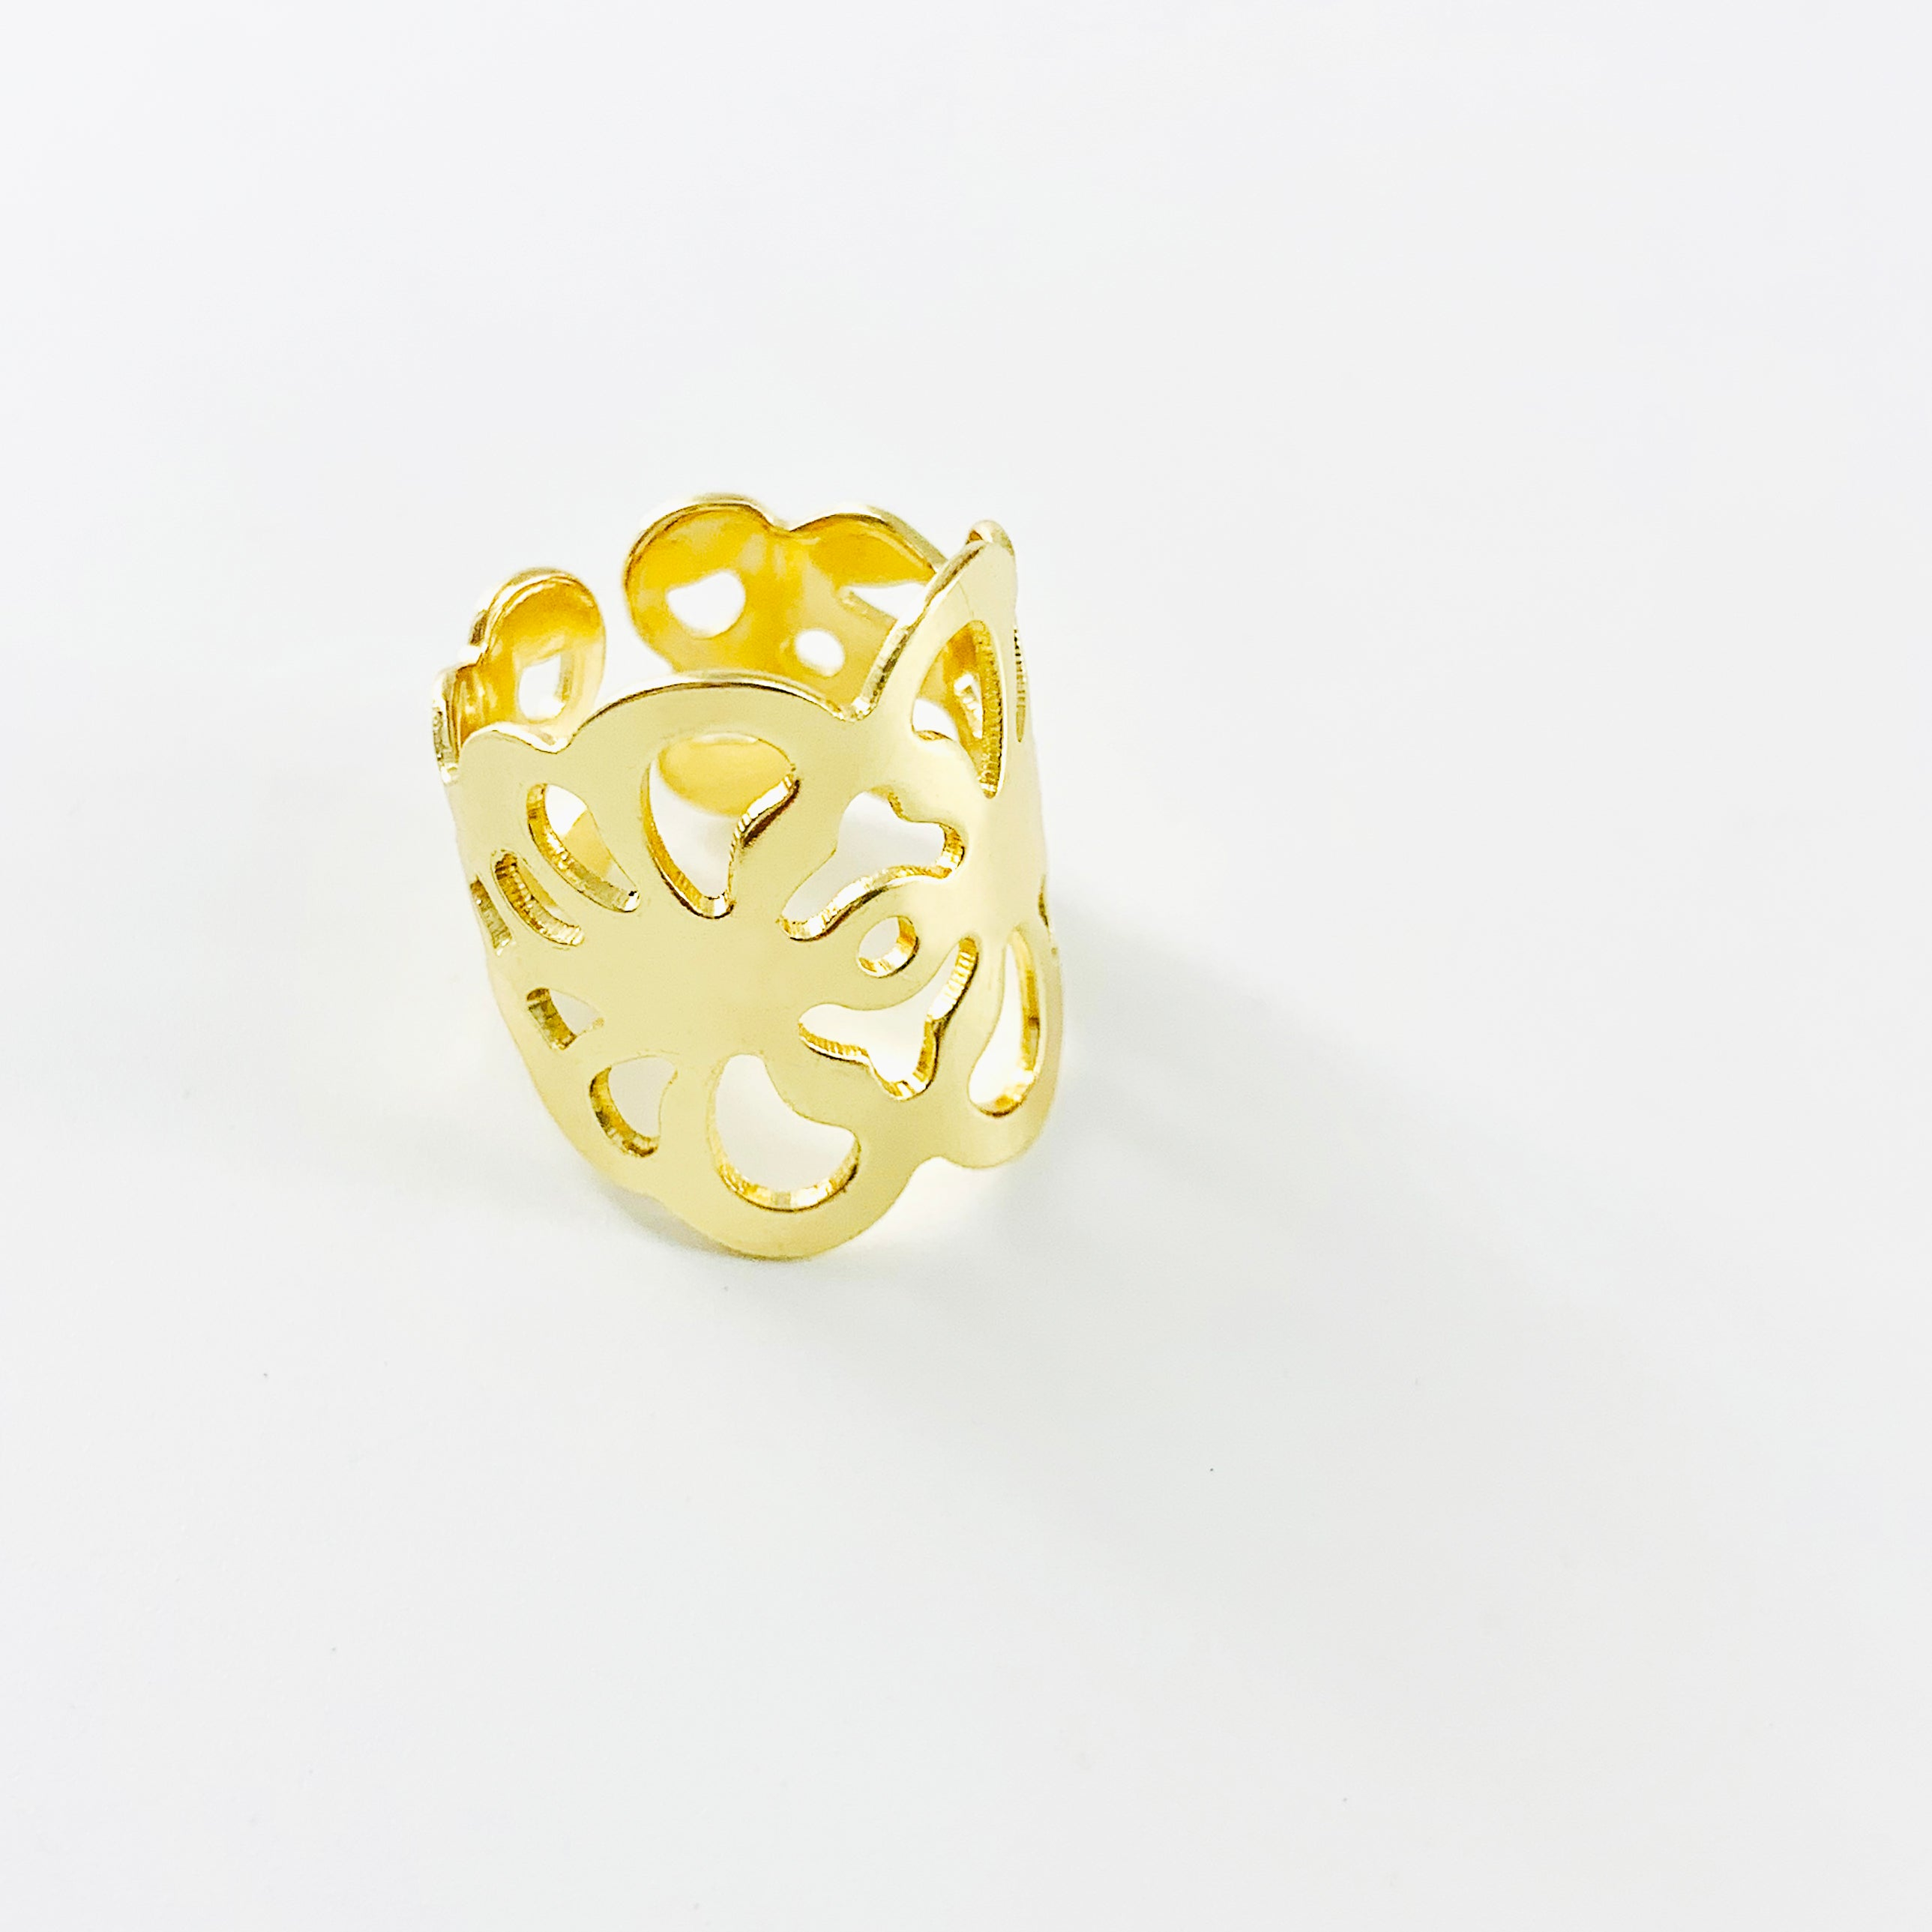 Wide gold ring with floral cut-out patterns